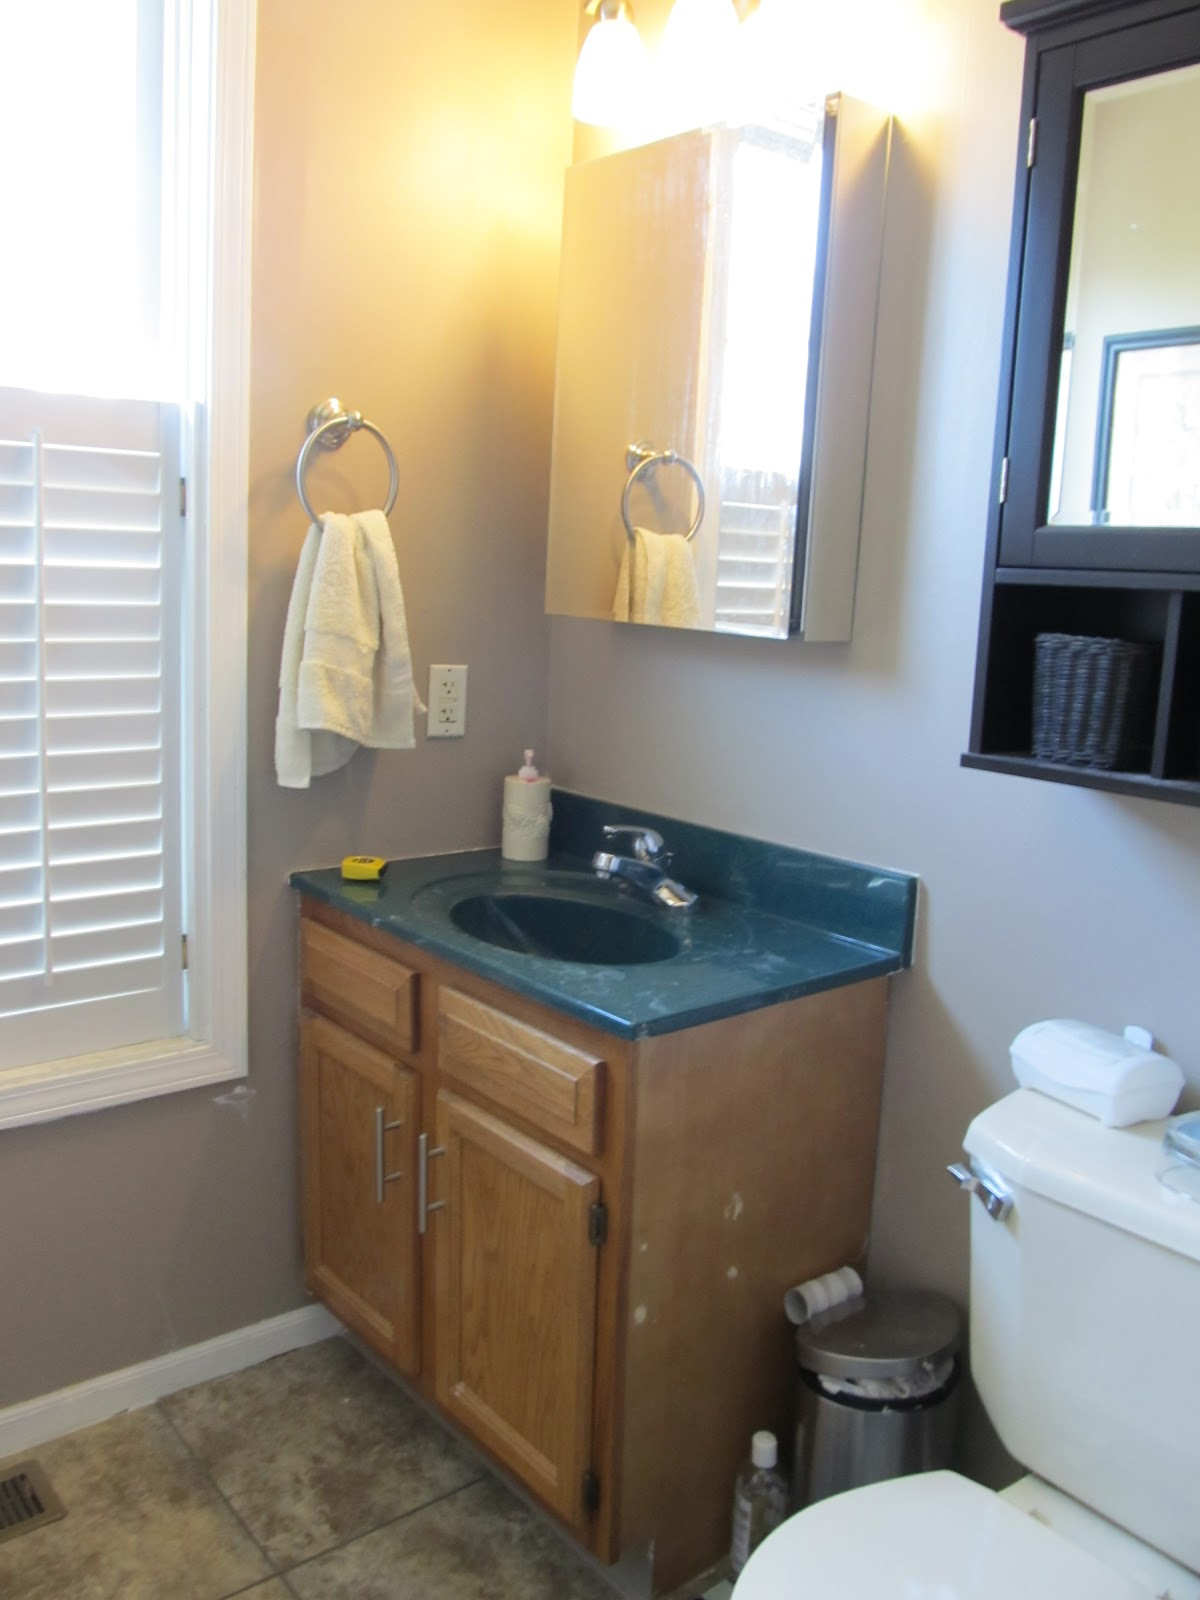 Updating Bathroom Vanity Lights : 4 Steps to Update Your Bathroom Vanity - Charlie The Cavalier